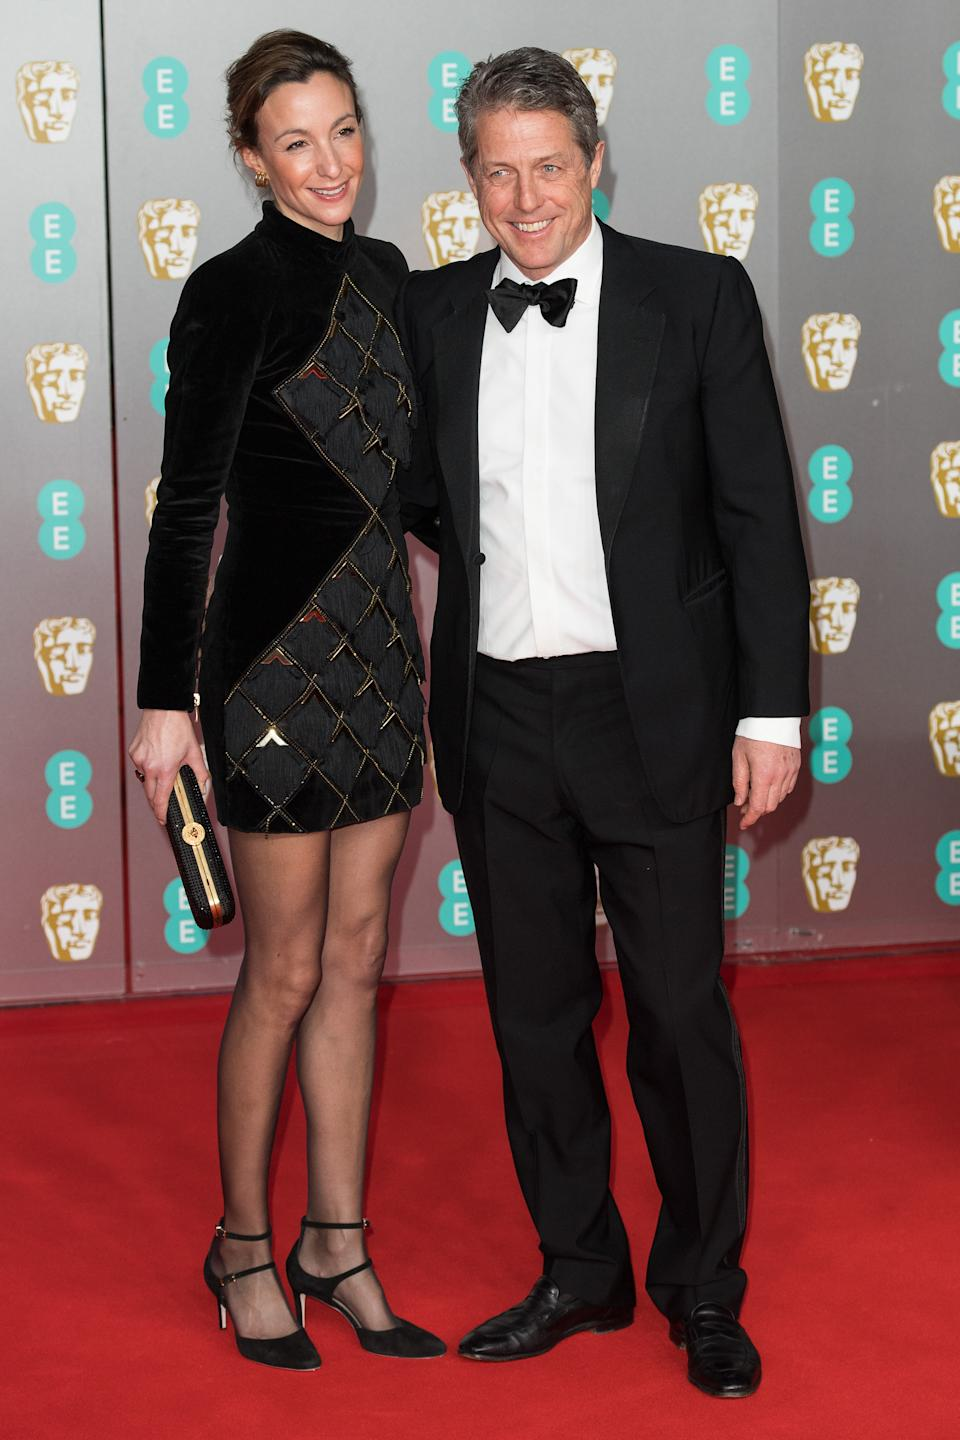 Anna Elisabet Eberstein and Hugh Grant attend the EE British Academy Film Awards 2020 at Royal Albert Hall on February 02, 2020 in London, England. (Photo by Jeff Spicer/Getty Images)